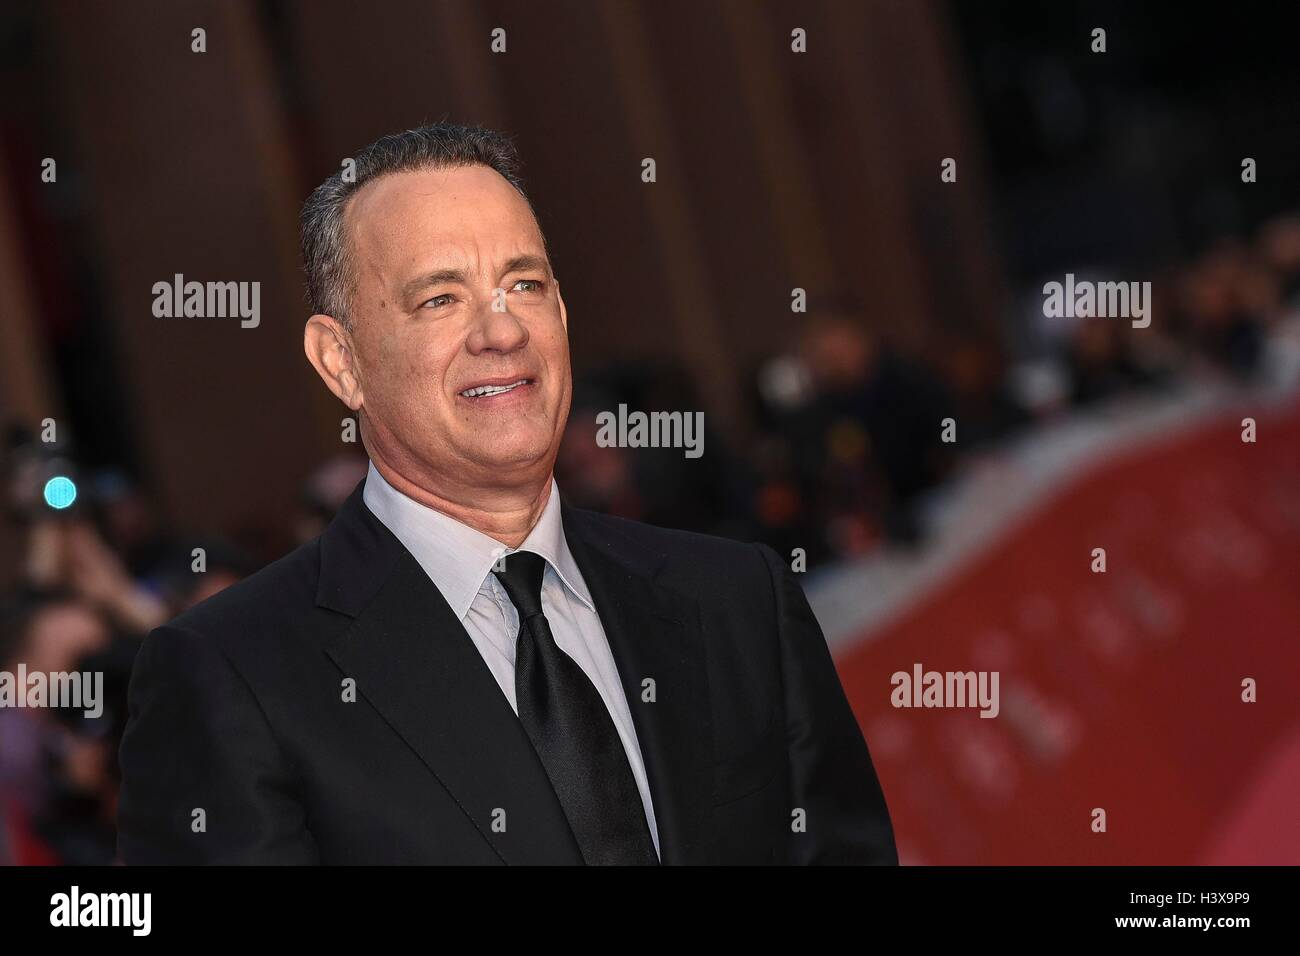 Italy, Rome, 13 October 2016 : Tom Hanks at the red carpet at the Rome Film Festival 2016    Photo Credit:  Fabio - Stock Image